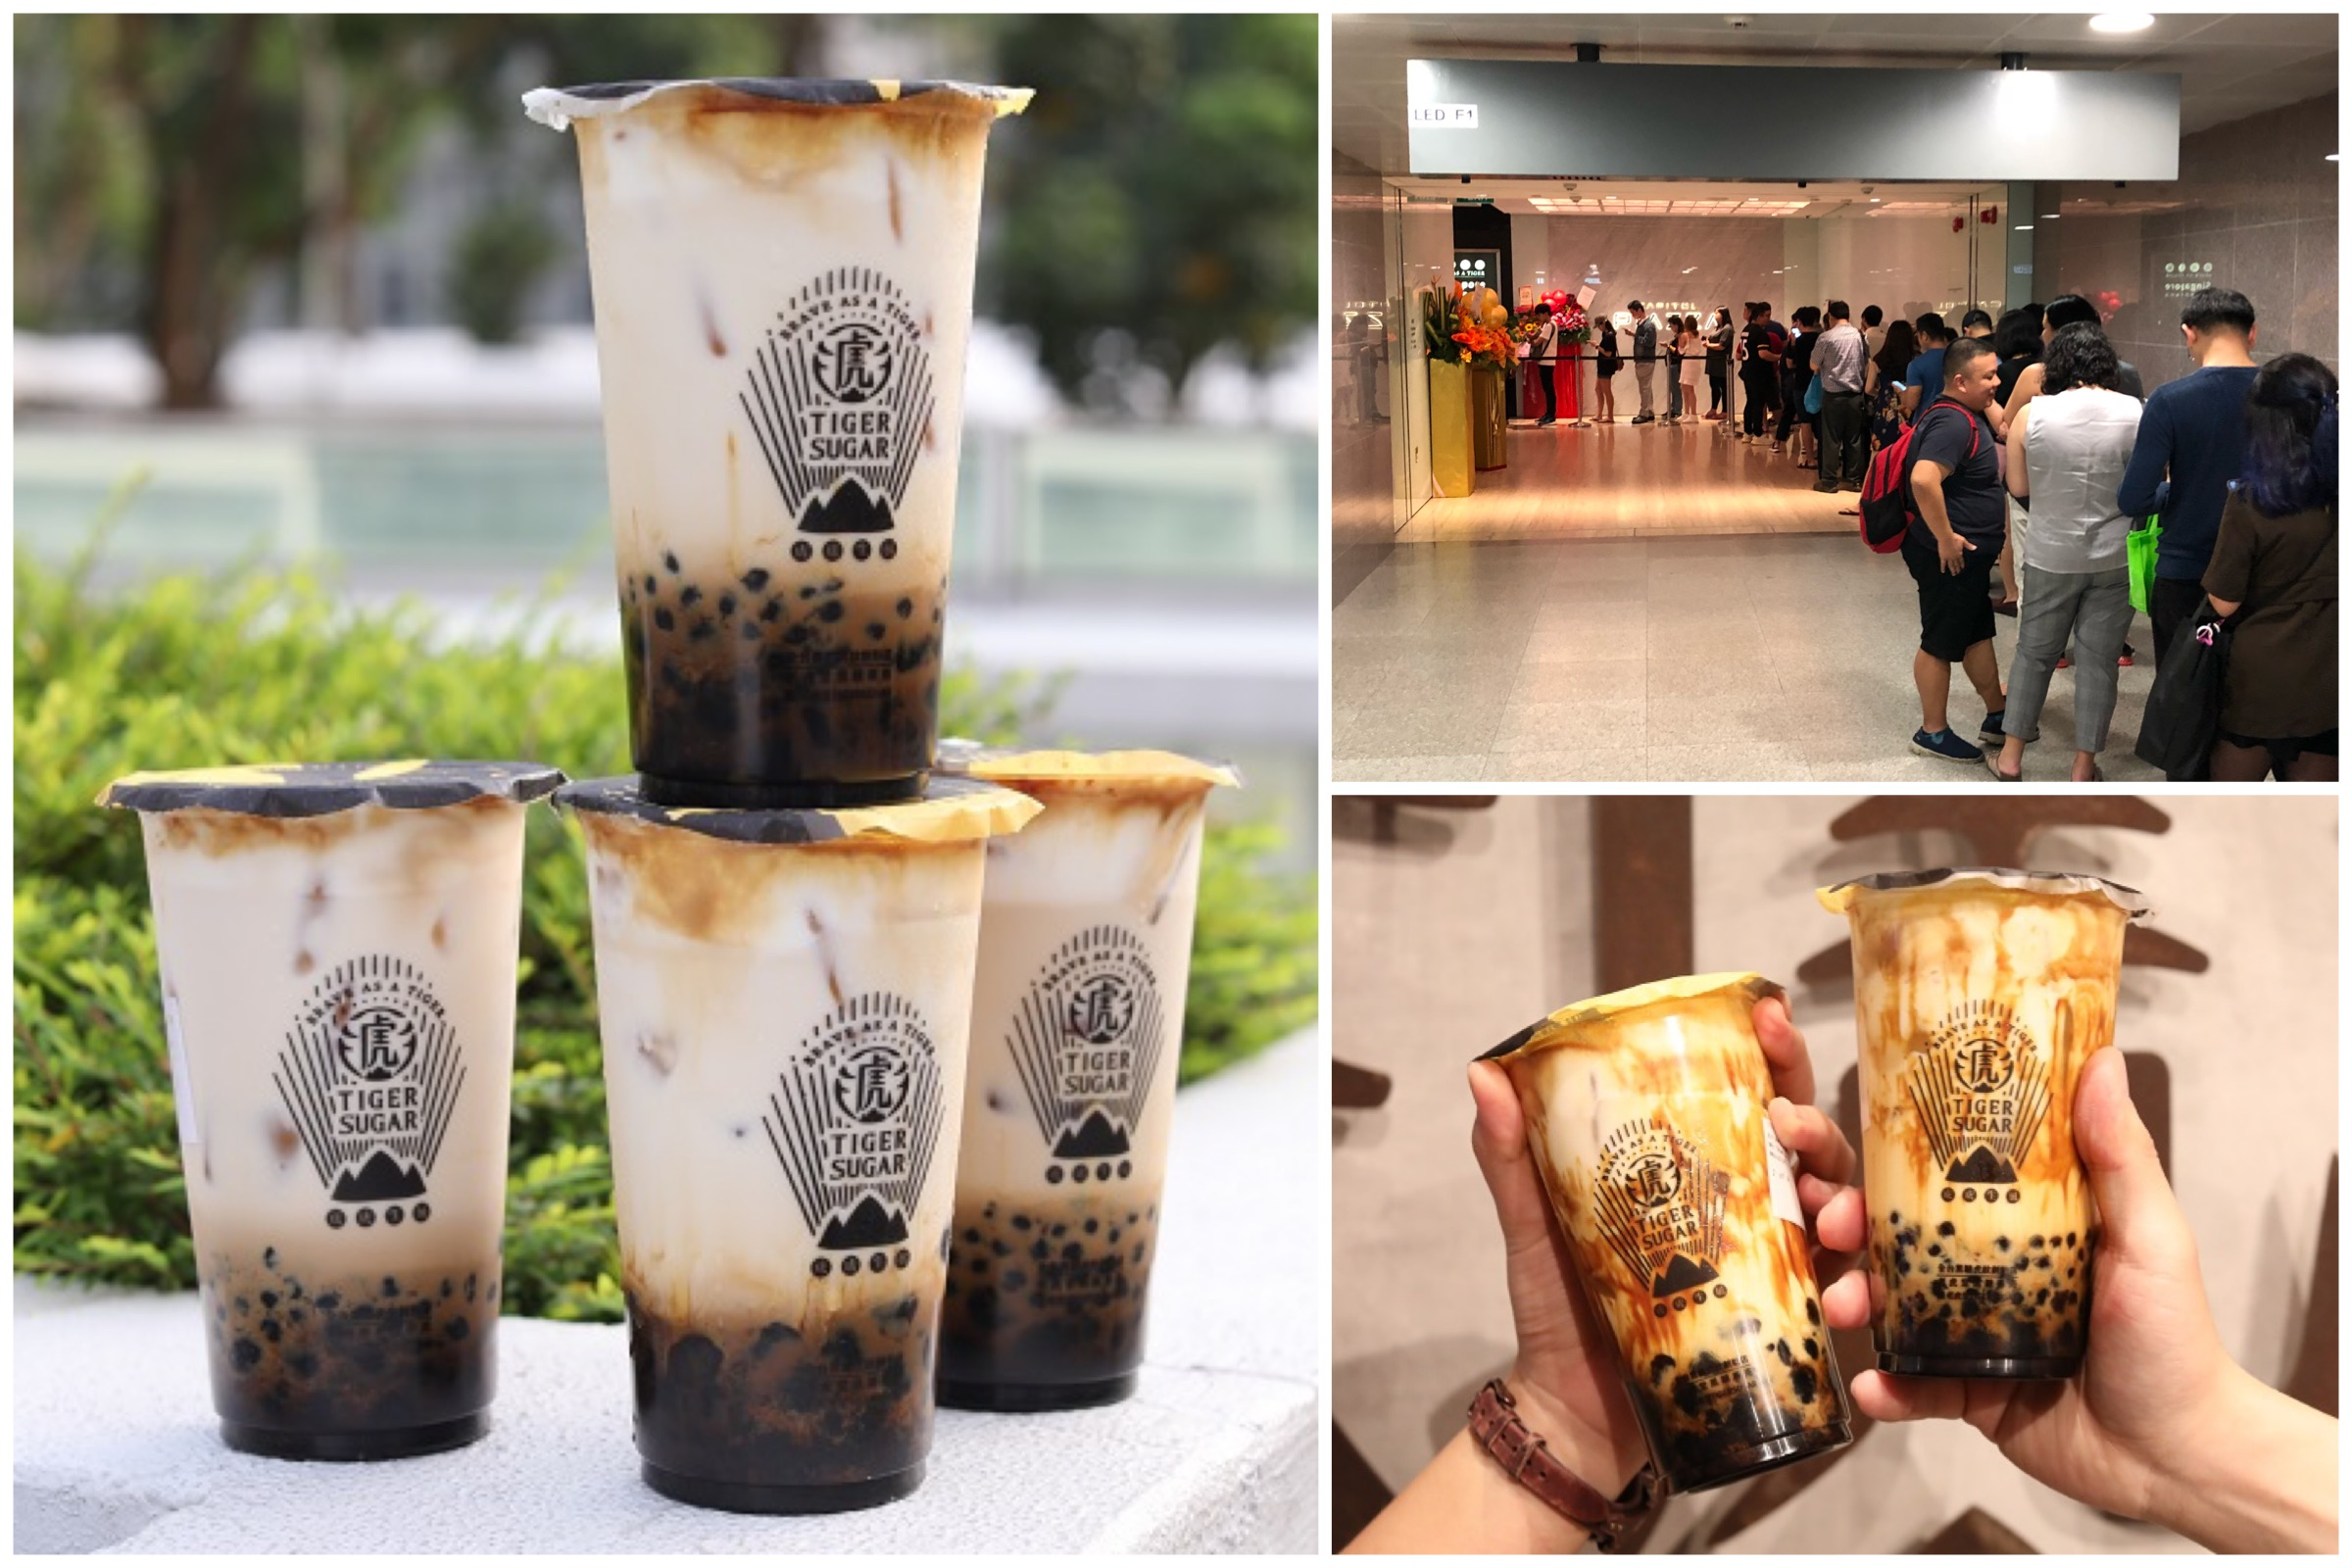 Tiger Sugar Singapore - Popular Brown Sugar Milk Shop Opening At Chinatown Point 8 Dec (Sat)